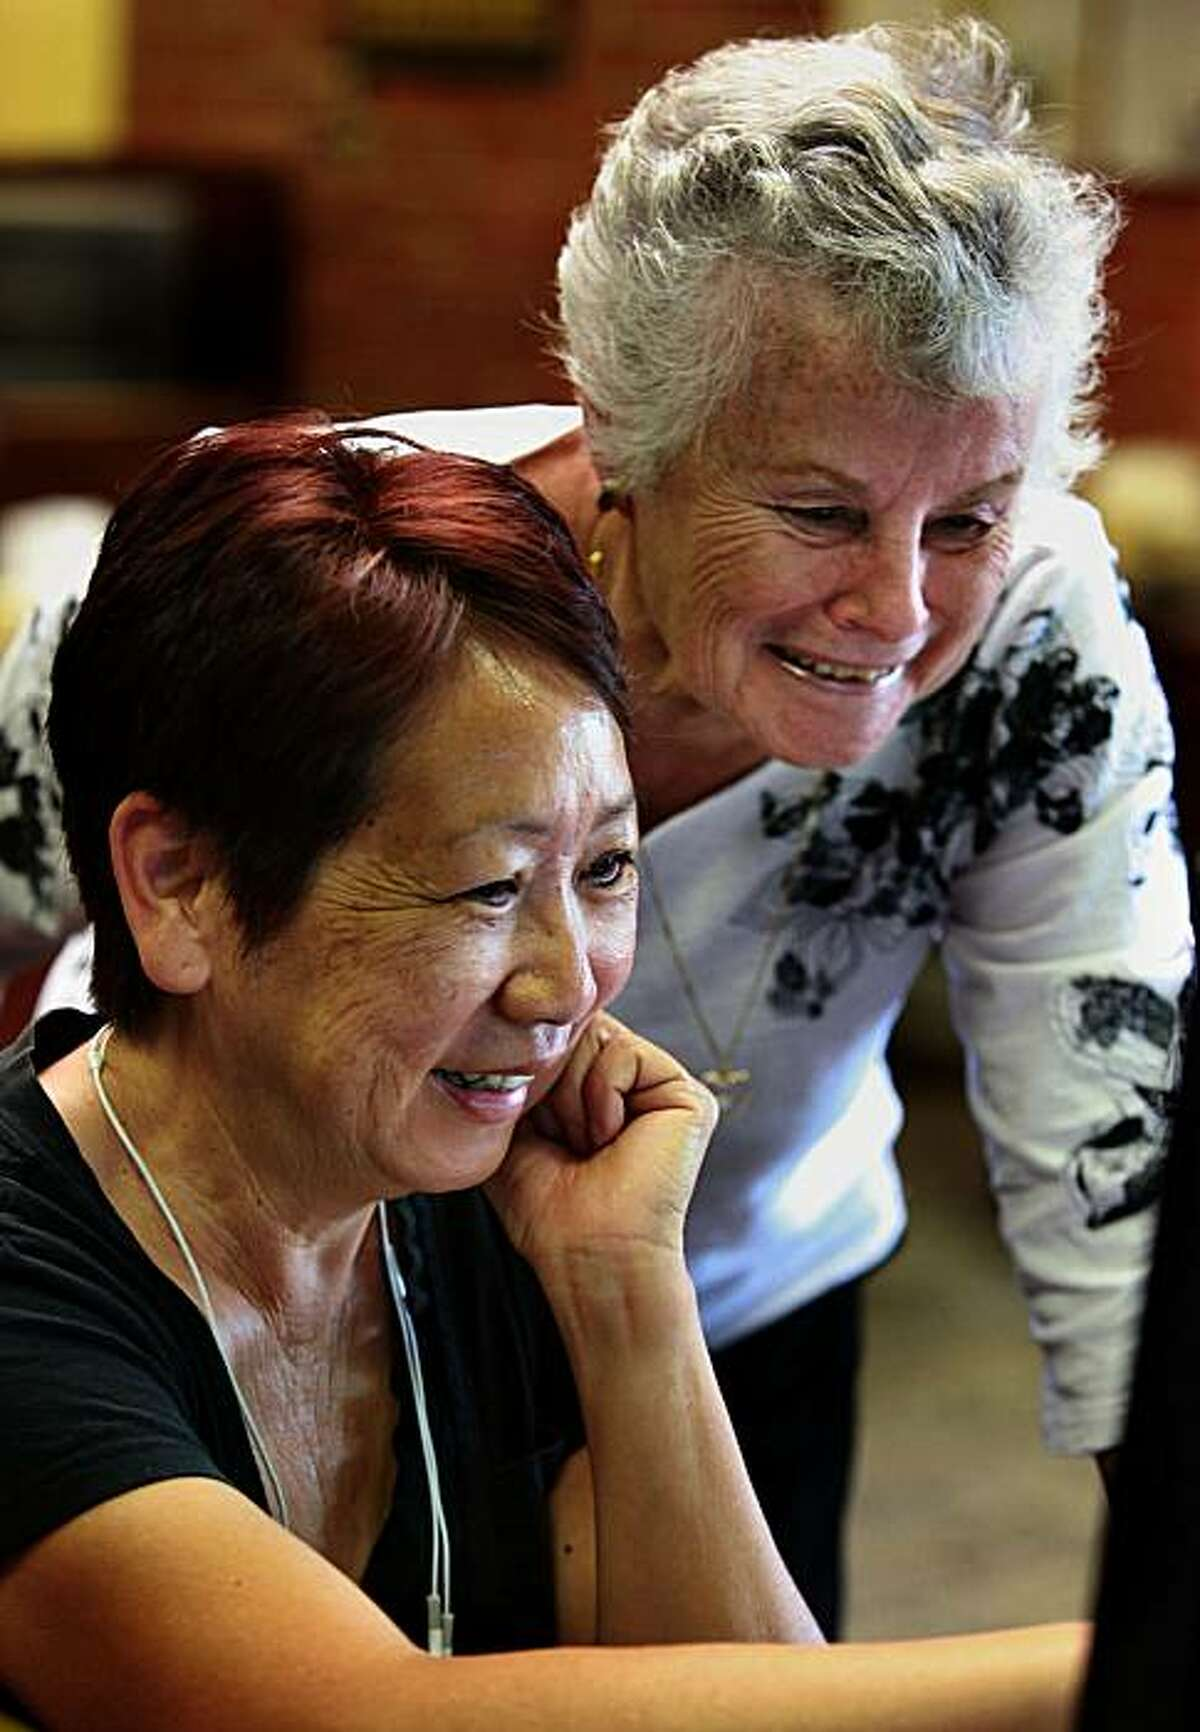 Volunteer Marilyn Hosfeldt (back) helping Frances Lim (front) of Palo Alto find articles on hip replacement in the Stanford Health Library at the Stanford Shopping Center in Palo Alto, Calif., on Tuesday, June 22, 2010, Frances Lim has a 92 year old family member who is going to see a doctor about hip replacement. Starting 21 years ago the library has 80 volunteers.